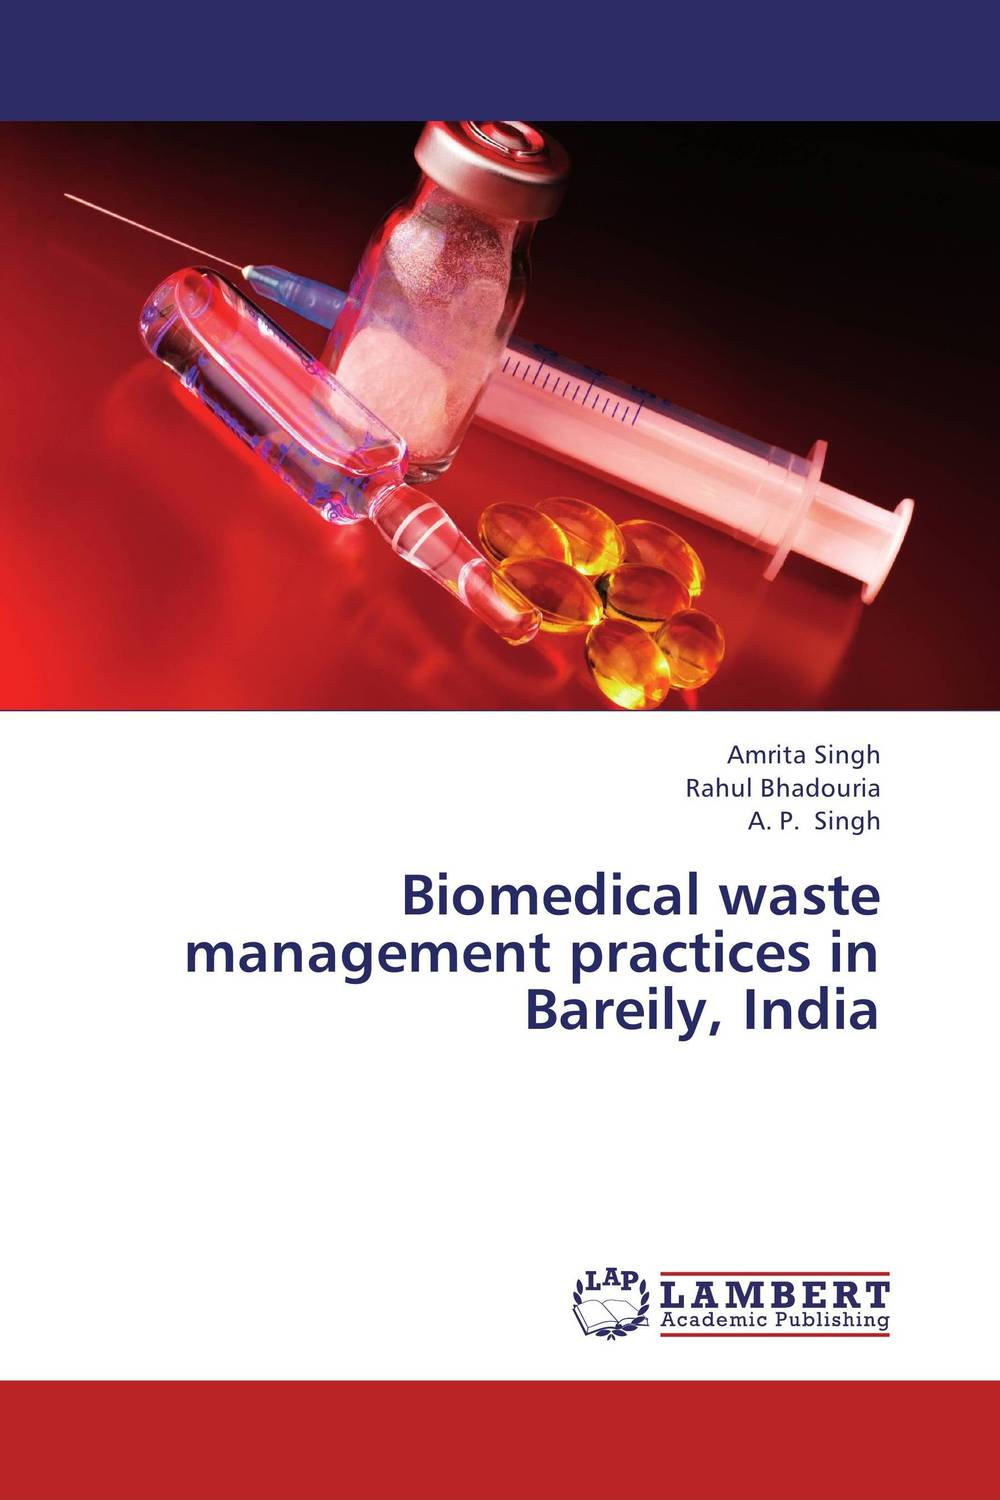 где купить Biomedical waste management practices in Bareily, India по лучшей цене